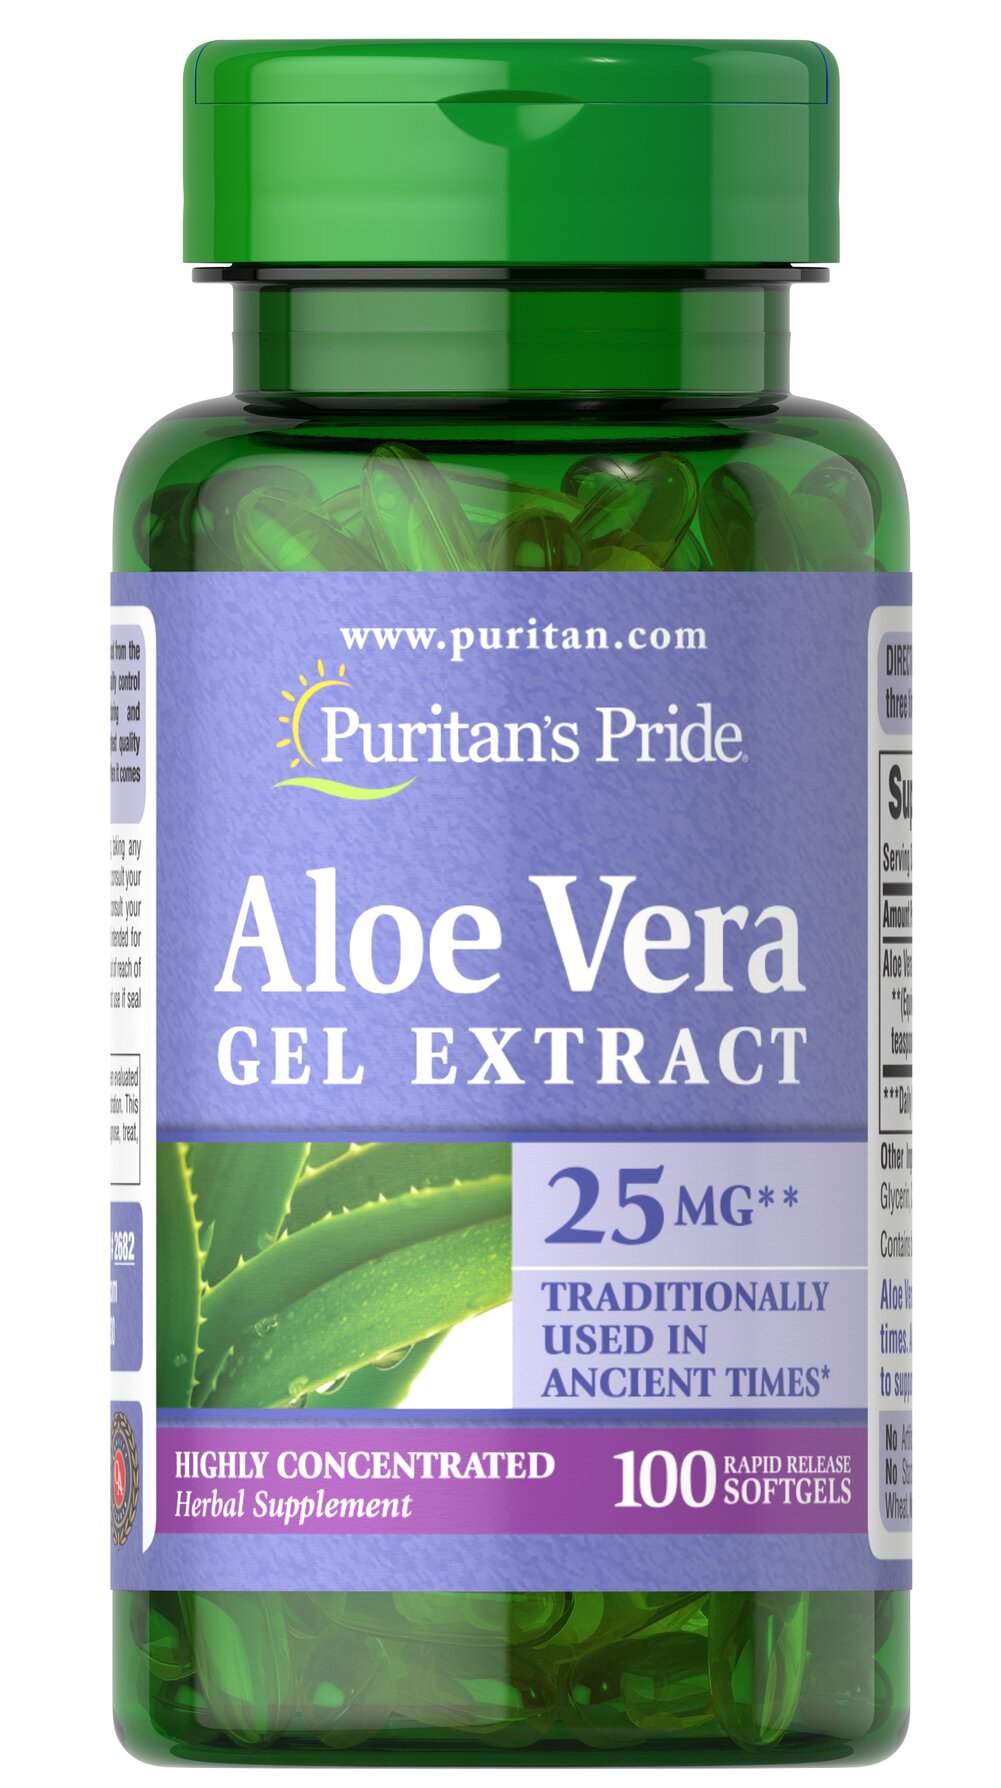 Aloe Vera Extract 25 mg <p>Serves as an aid for healthy digestion**</p><p>Plays a role in the well-being of the body**</p><p>Convenience of capsules, softgels and liquids is unsurpassed</p><p>Has been used and trusted for centuries. **</p><p>Aloe Vera contains a vast array of vitamins, minerals, amino acids, polysaccharides and phenolic compounds, and has been shown to support a healthy digestive system.**</p> 100 Softgels 25 mg $9.49